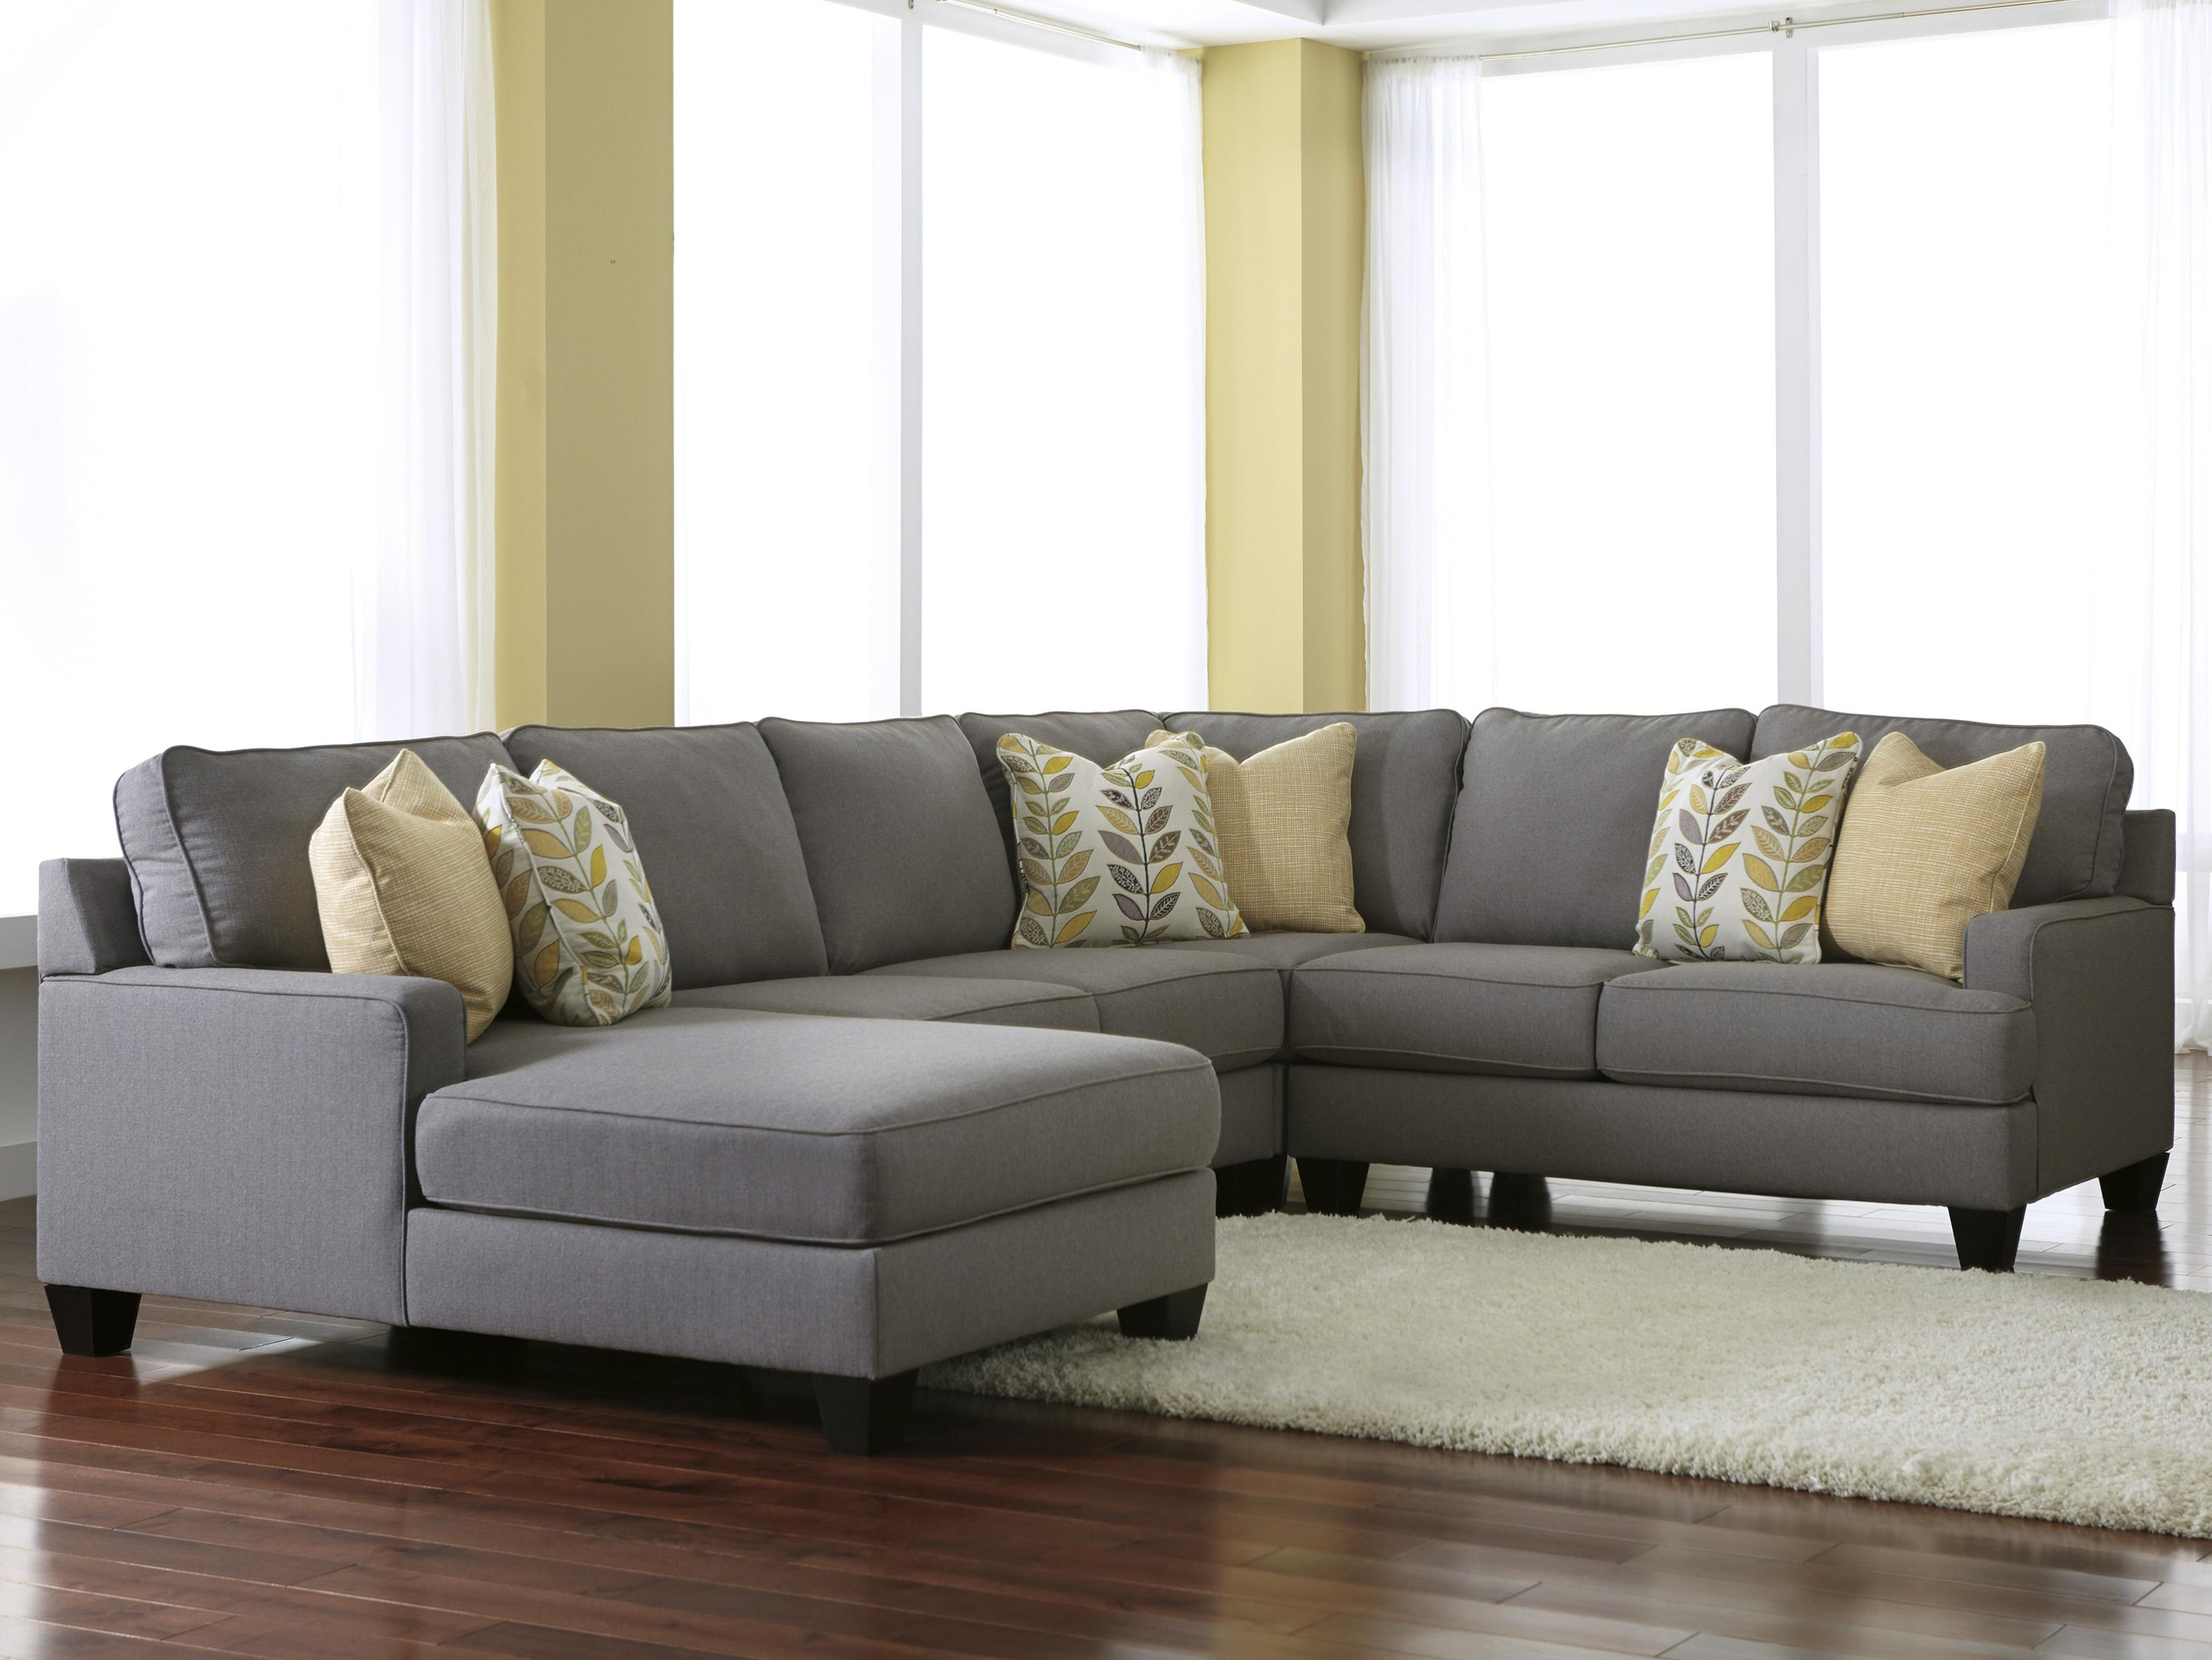 4-Piece Sectional Sofa with Left Chaise